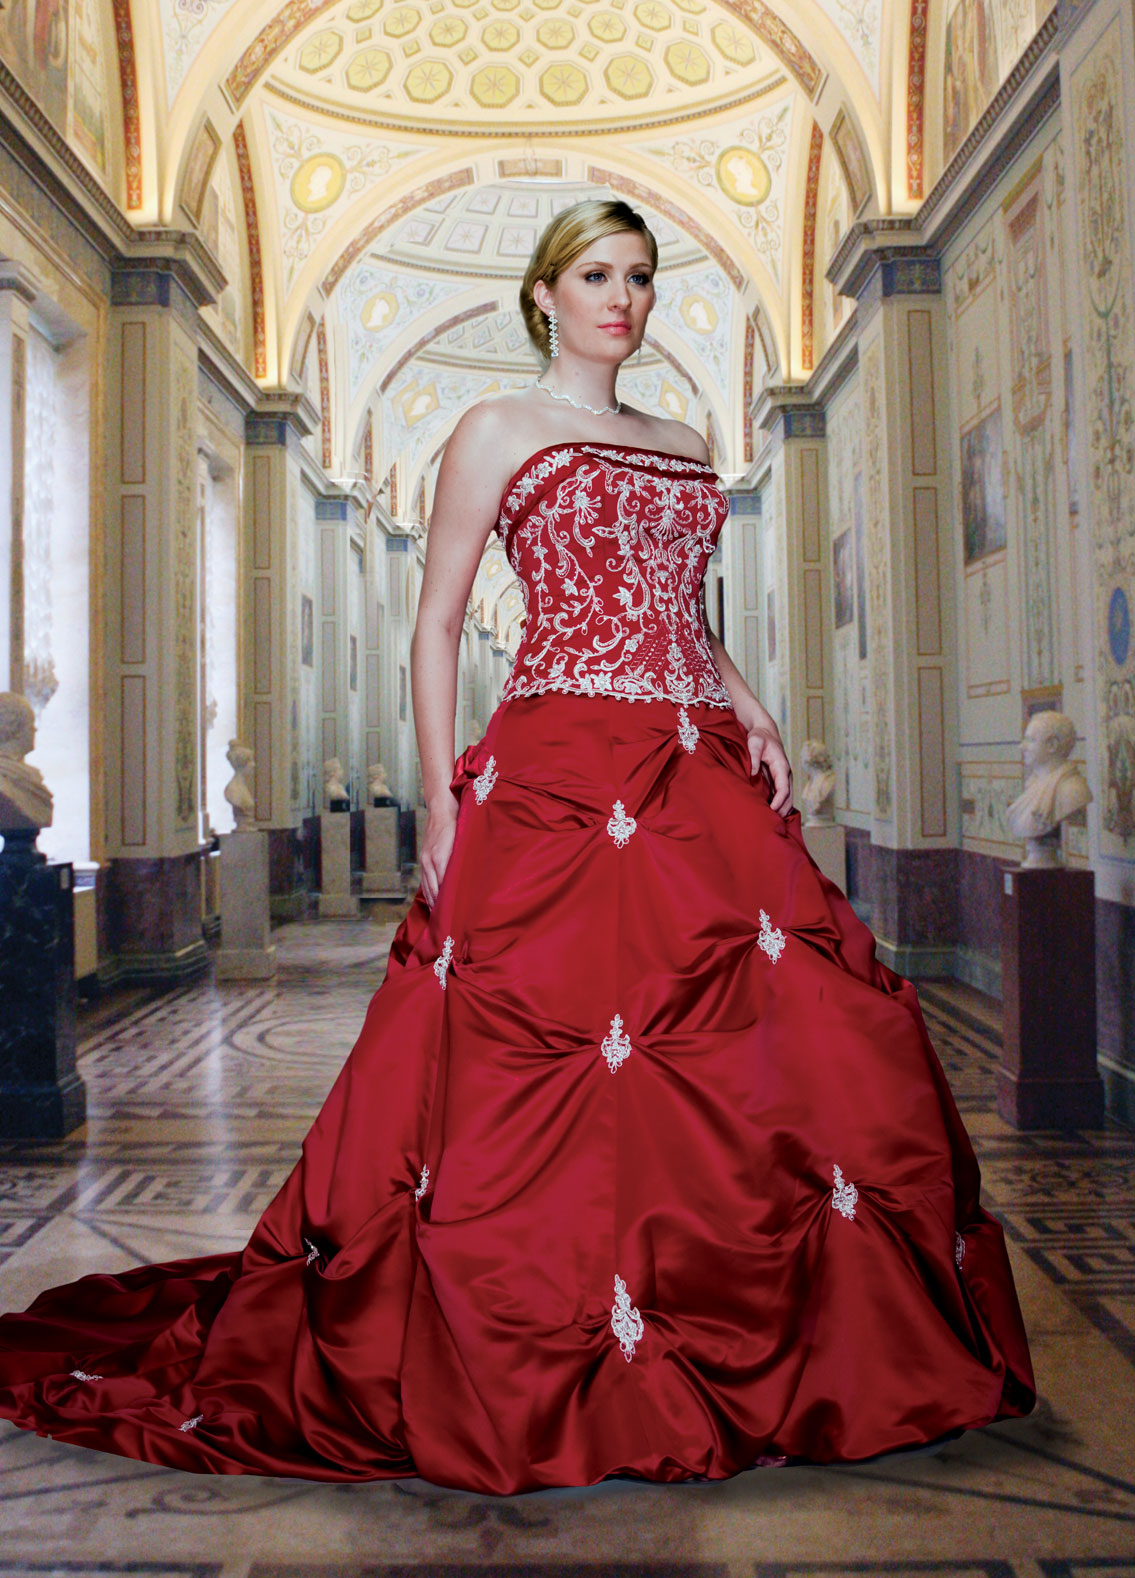 red and white wedding gown